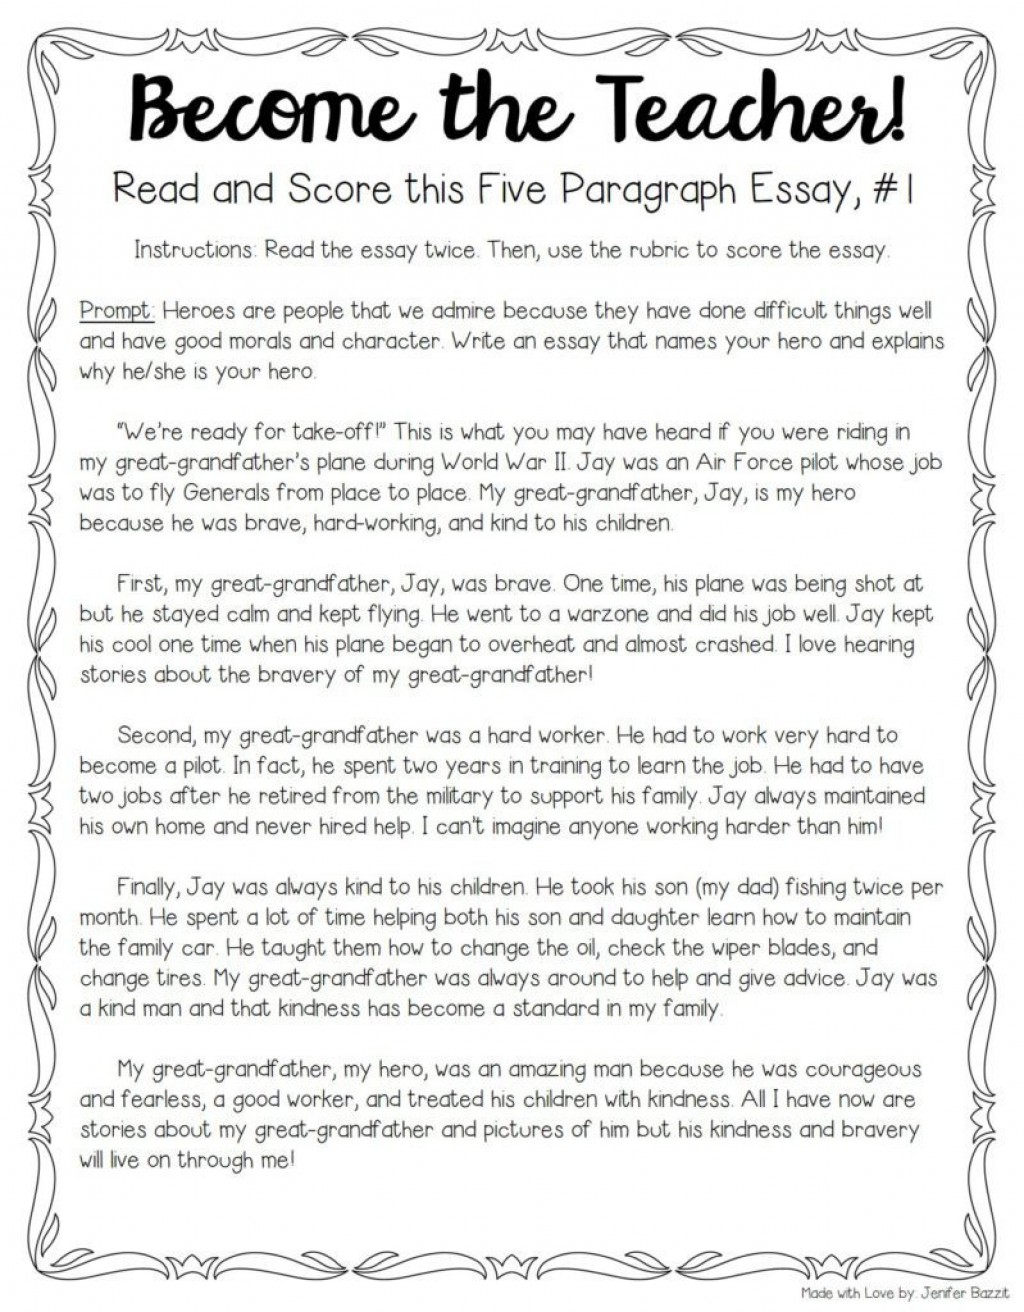 014 Five Paragraph Essay Full 799x1024resize7992c1024 Example Read Unusual My Online Reddit For Free Large